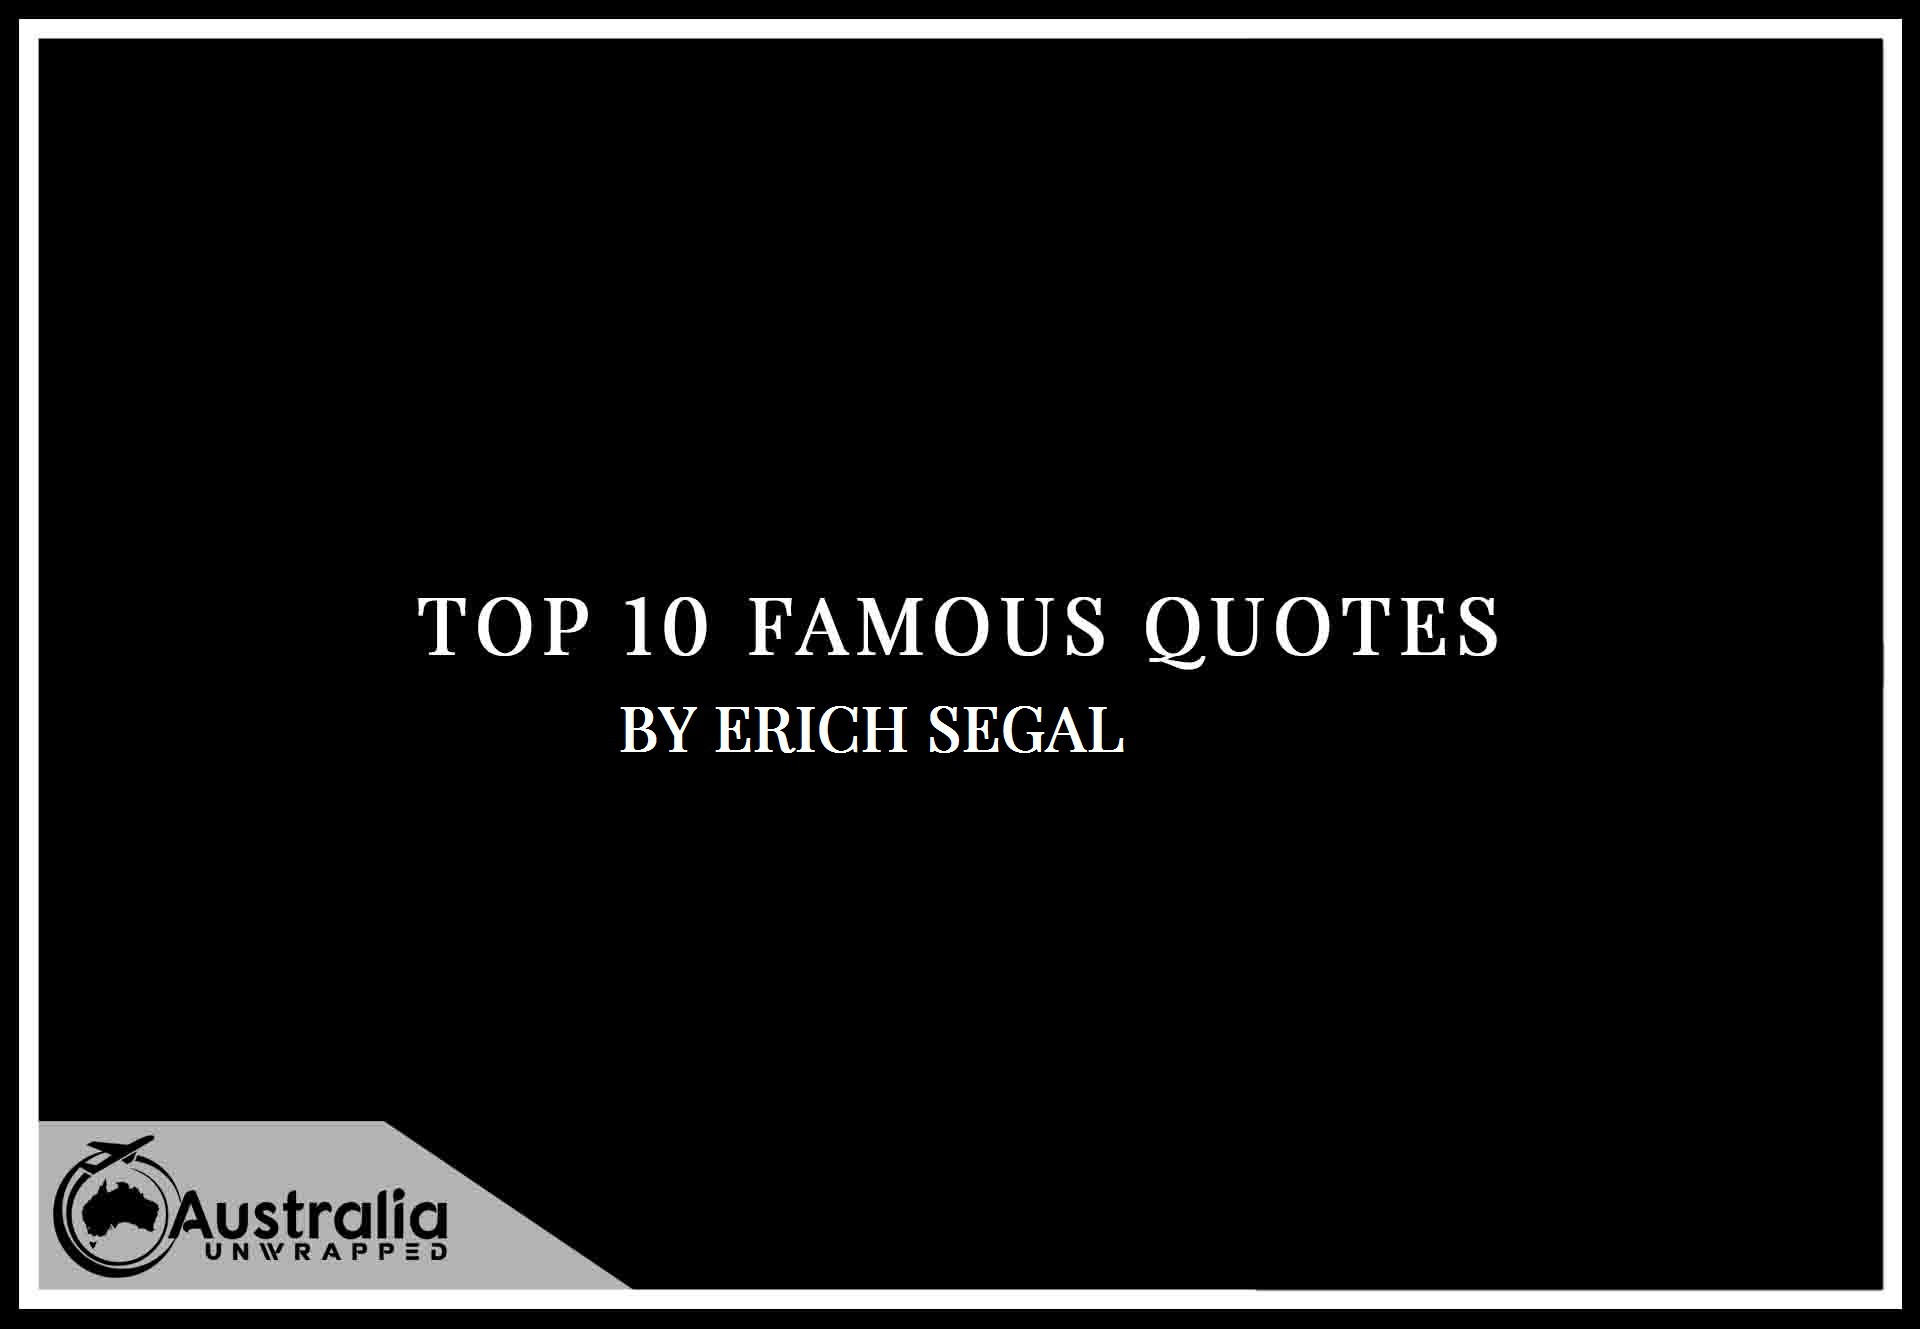 Erich Segal's Top 10 Popular and Famous Quotes